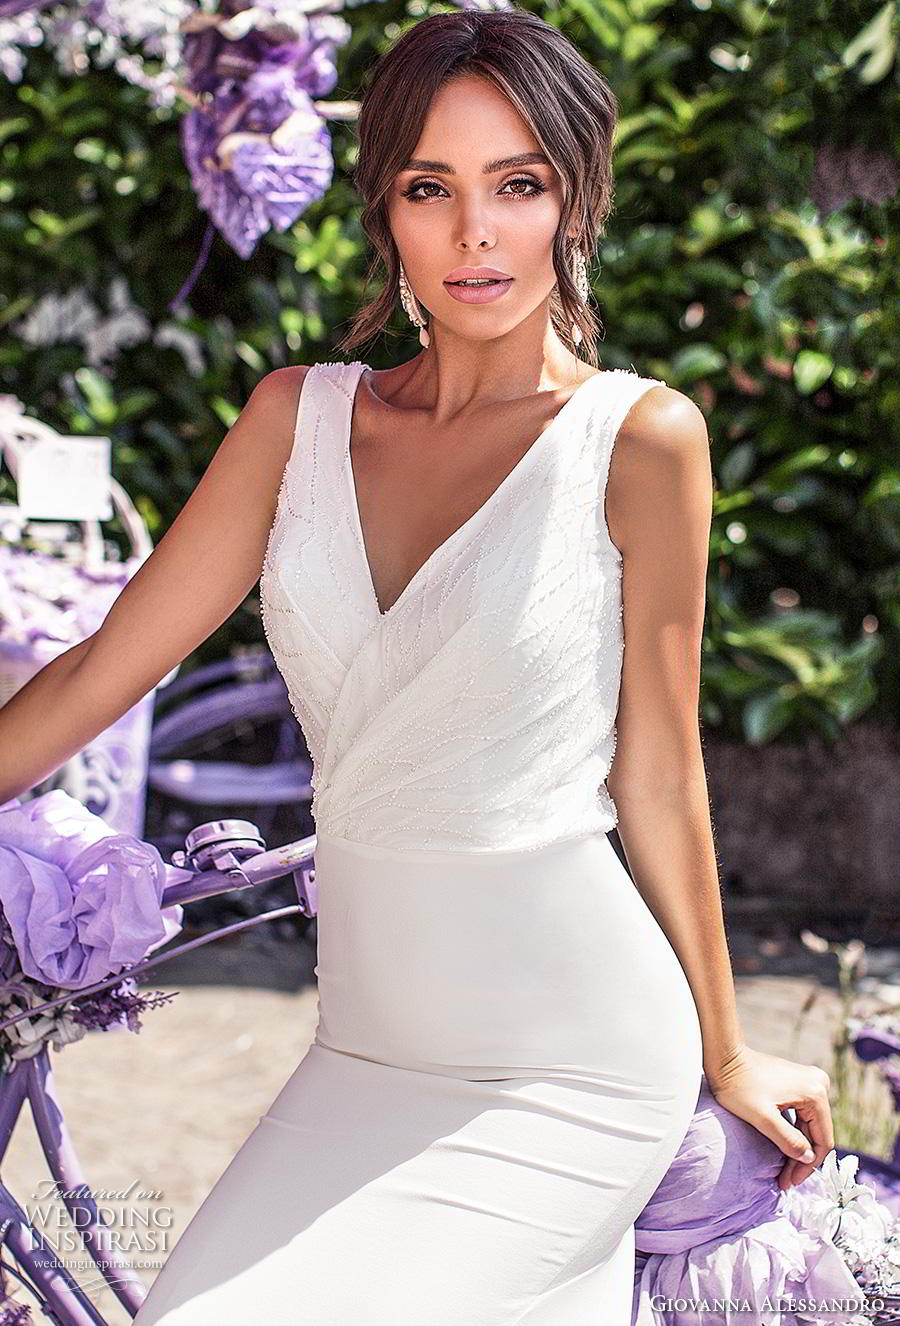 giovanna alessandro 2019 bridal sleeveless v neck wrap over heavily embellished bodice simple sheath wedding dress v back chapel train (2) zv